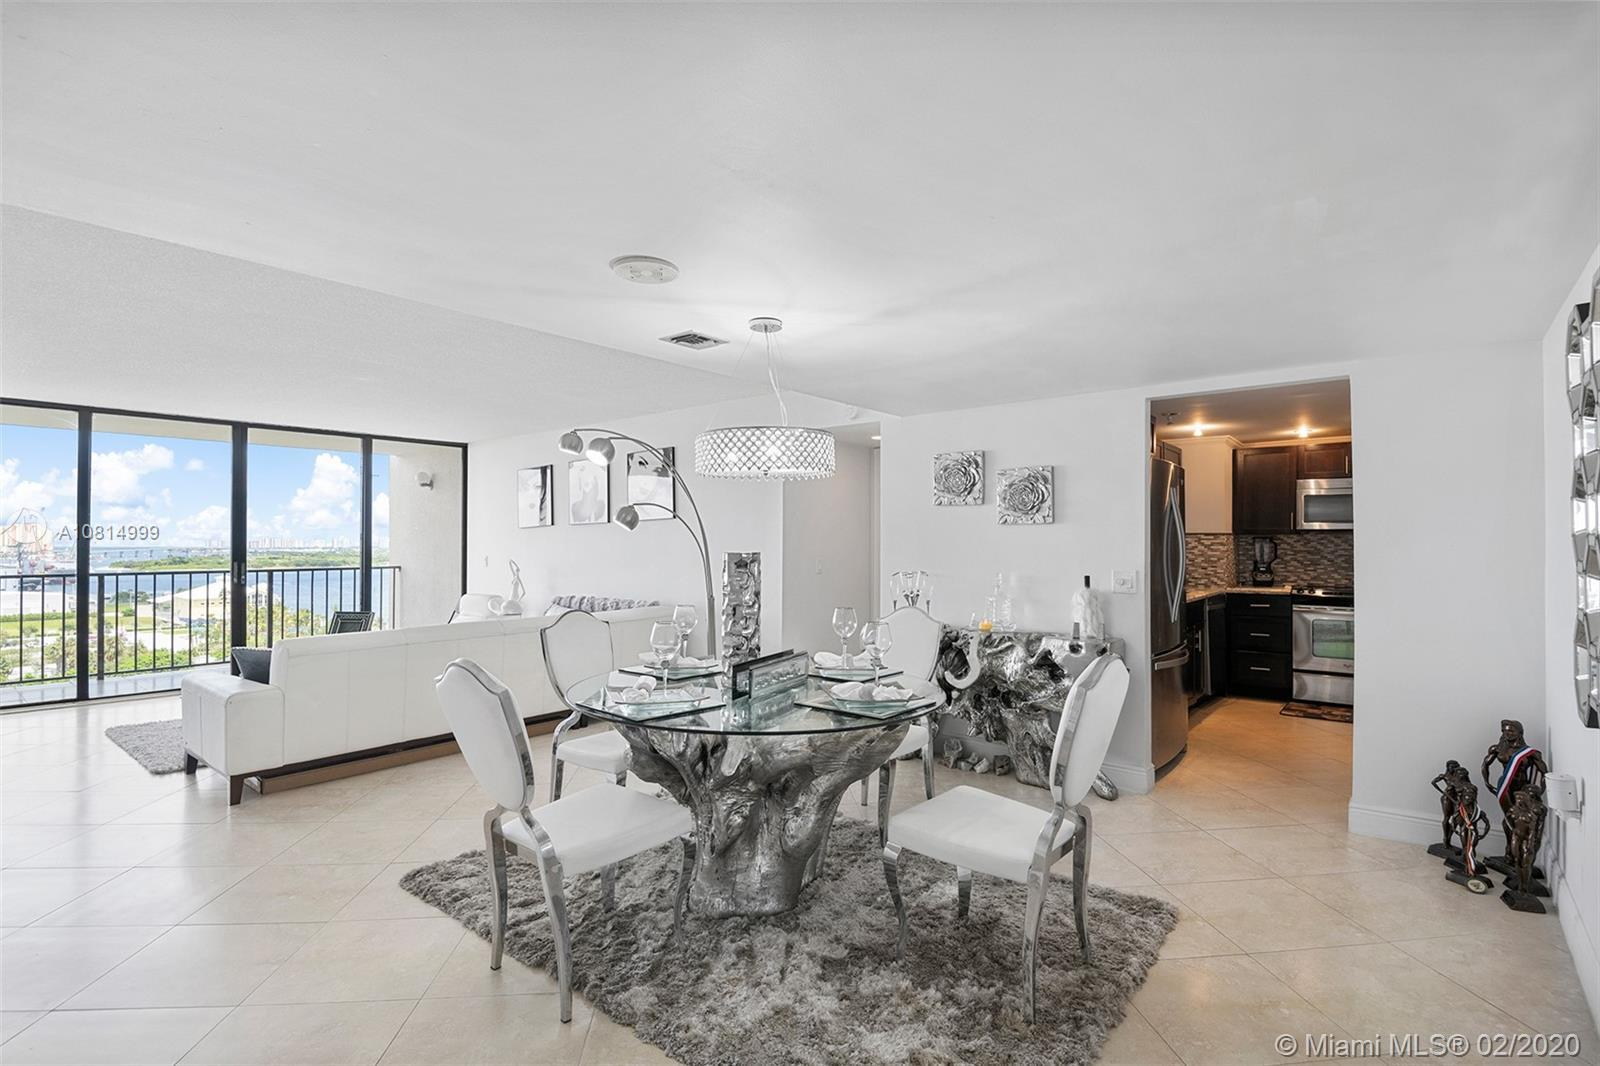 AMAZING, FULLY UPDATED WATERFRONT UNIT! INCREDIBLE LOCATION OVERLOOKING THE OCEAN & INTRACOASTAL. GR